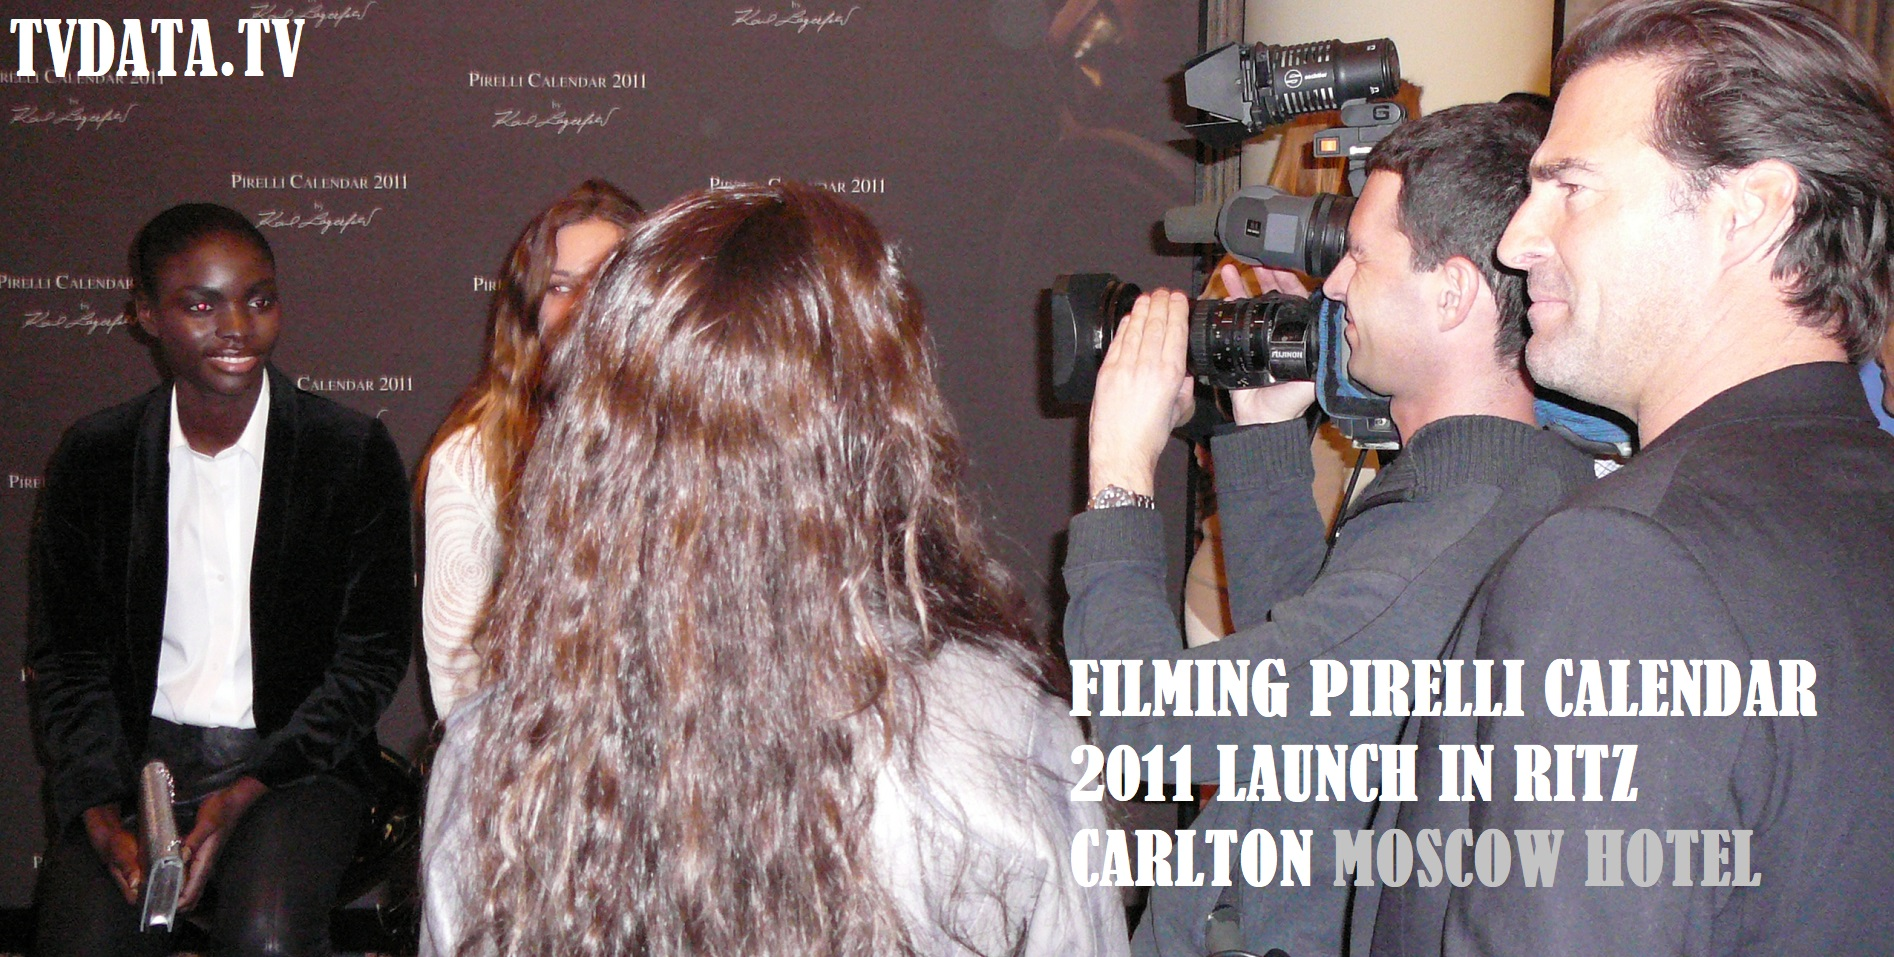 Video recording Pirelli event in Moscow-Ritz-Carlton Hotel